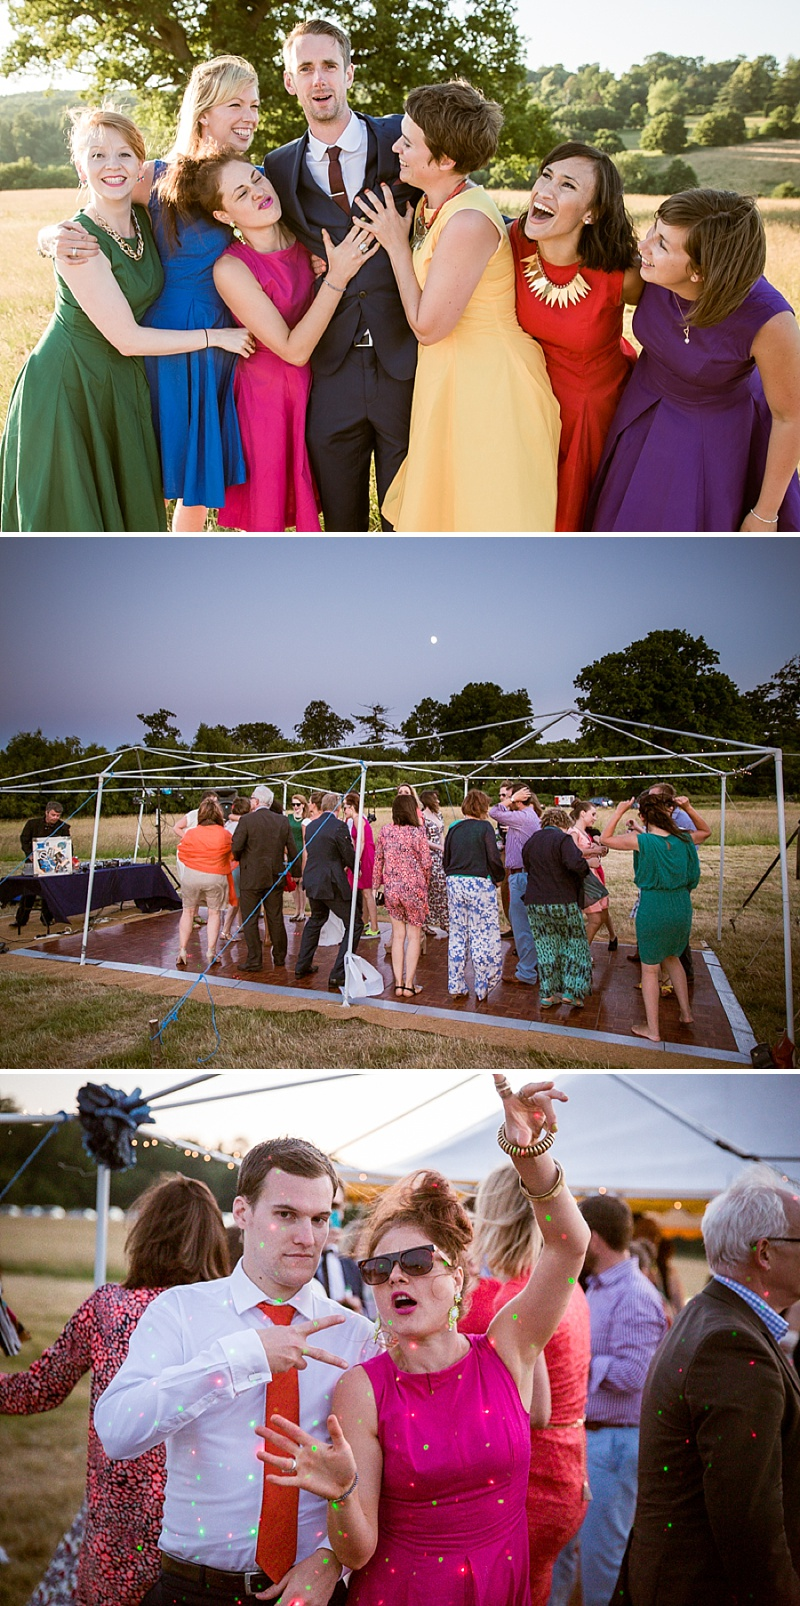 Marquee Wedding In East Sussex, Bride In Self-Designed Gown Made By Angela Webber, With Gold Matthew Williamson Belt, Bright Coloured 50s Style Bridesmaids Dresses, Images by Andrew Marshall_0013